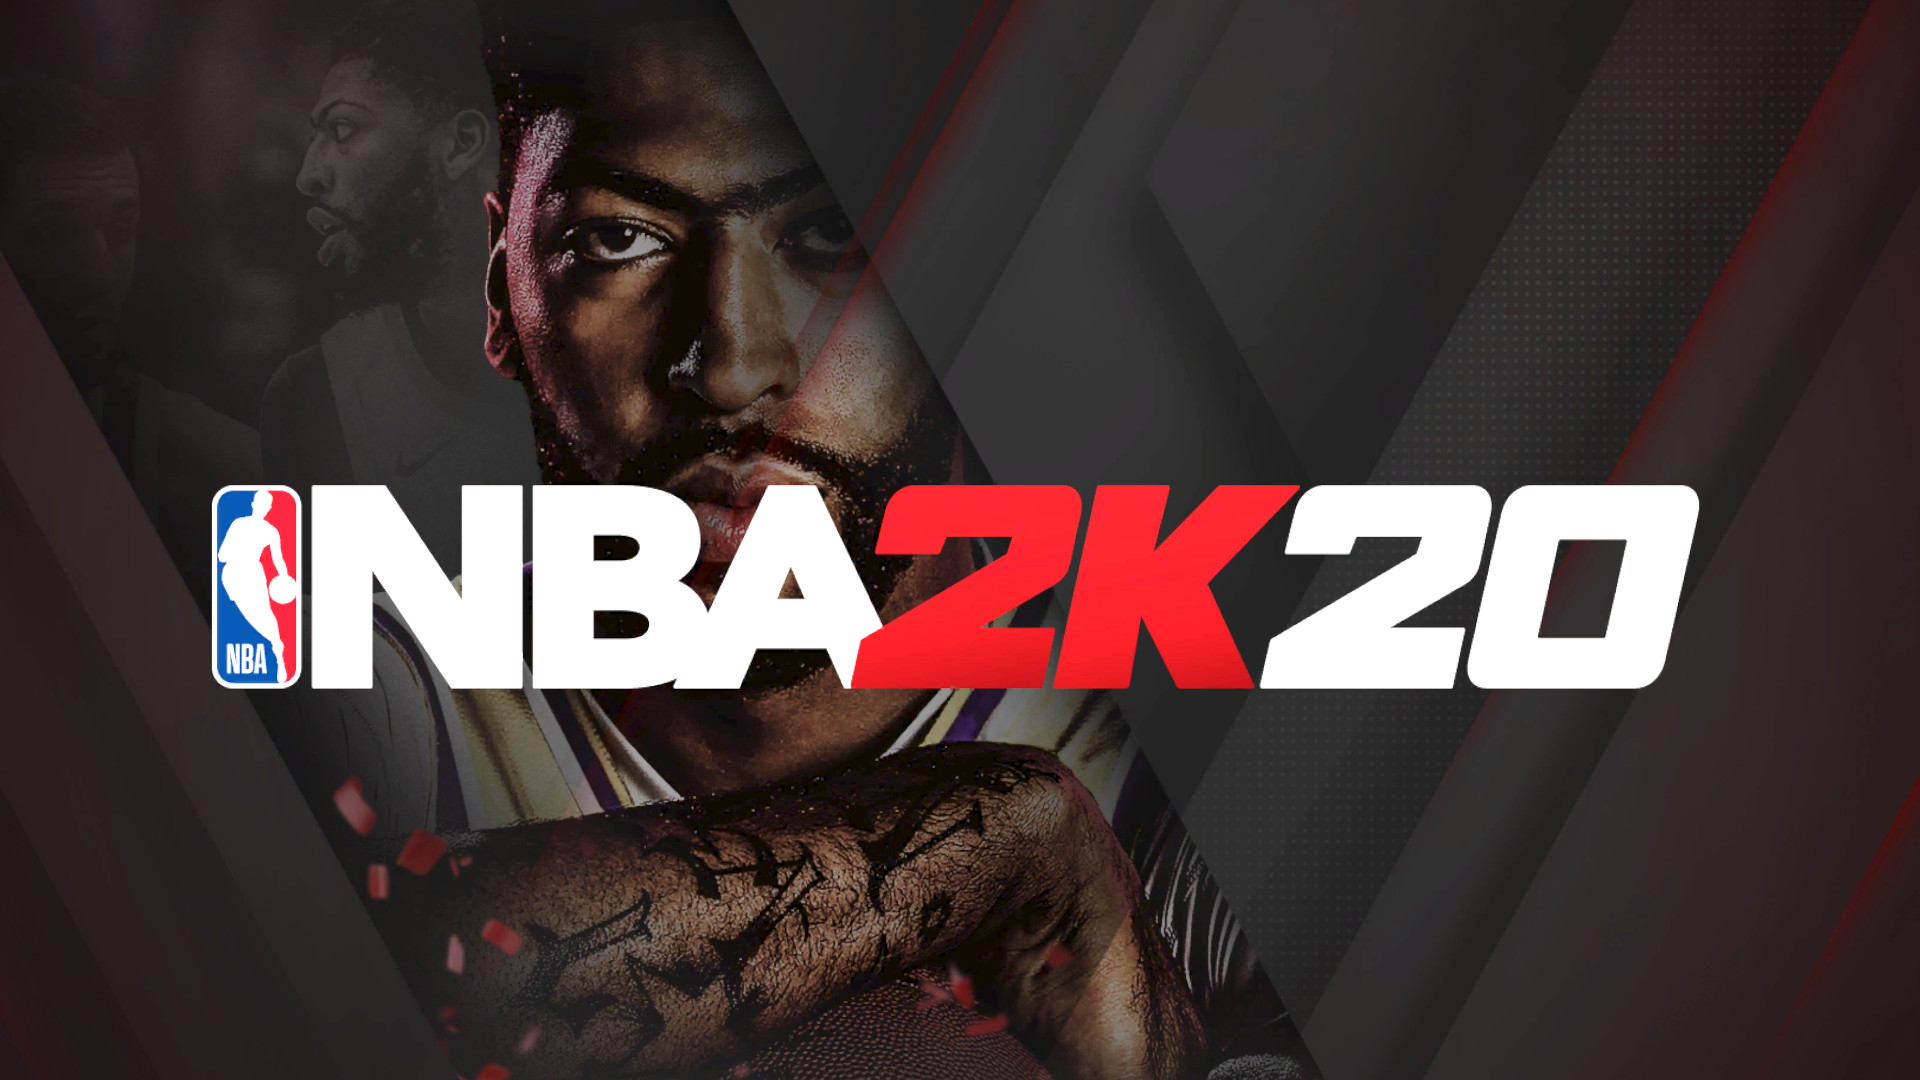 'NBA 2K20' review: The good, the bad and the new from 2K Sports